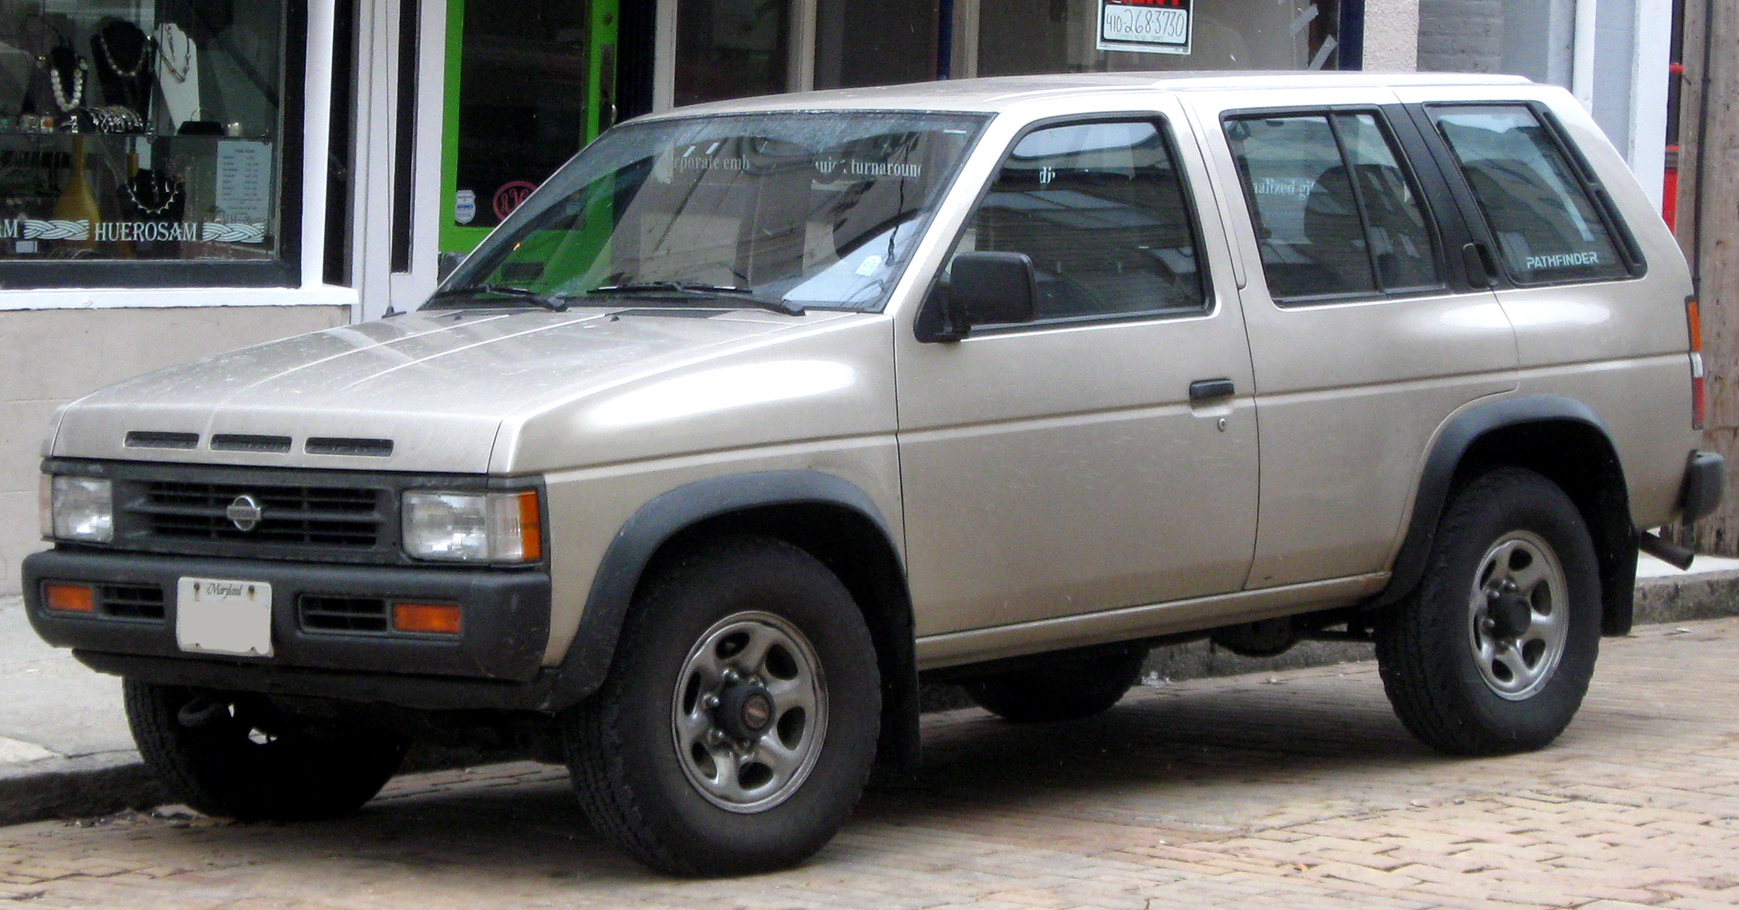 Nissan Pathfinder 1995 photo - 1